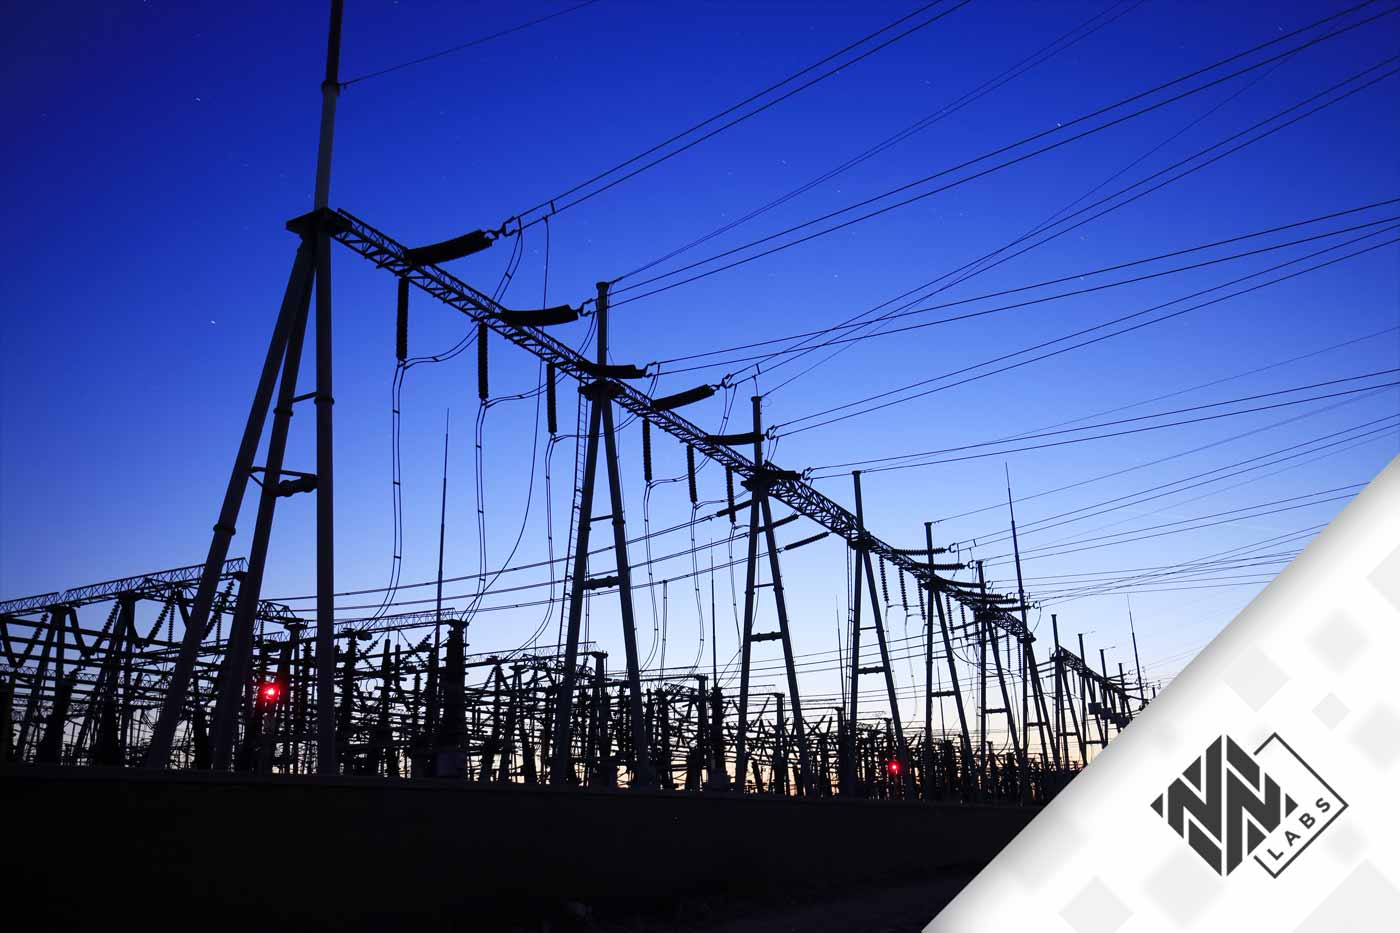 IEC 61850 Meets IEC 62351: Securing GOOSE Power Grid Weaknesses